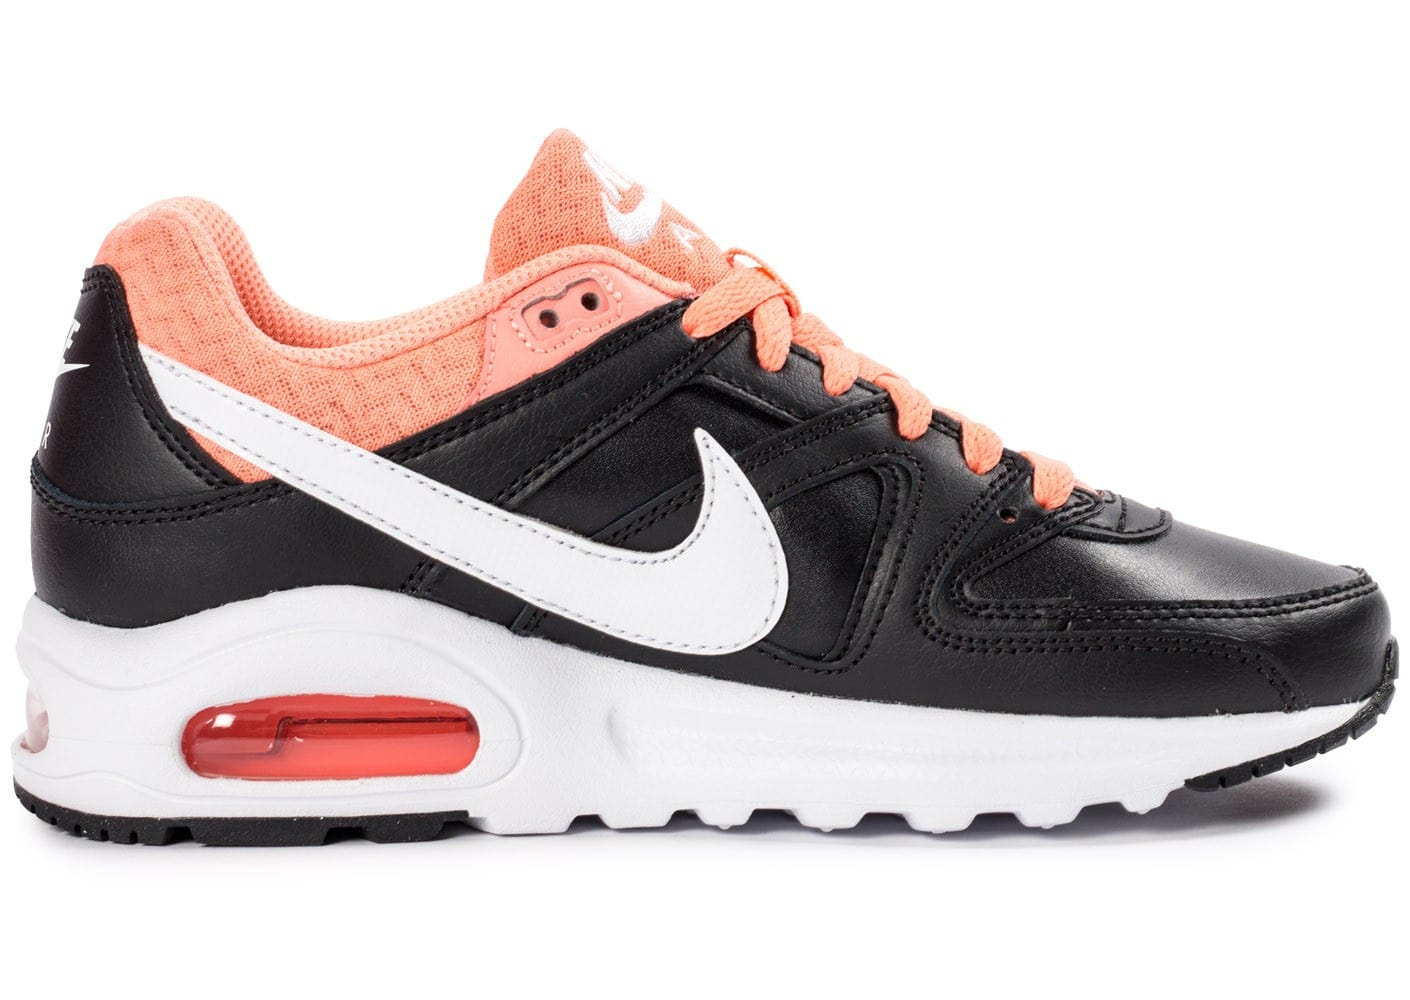 nike faible force delta - Nike Air Max Command Flex LTR Junior noire - Chaussures Nike ...